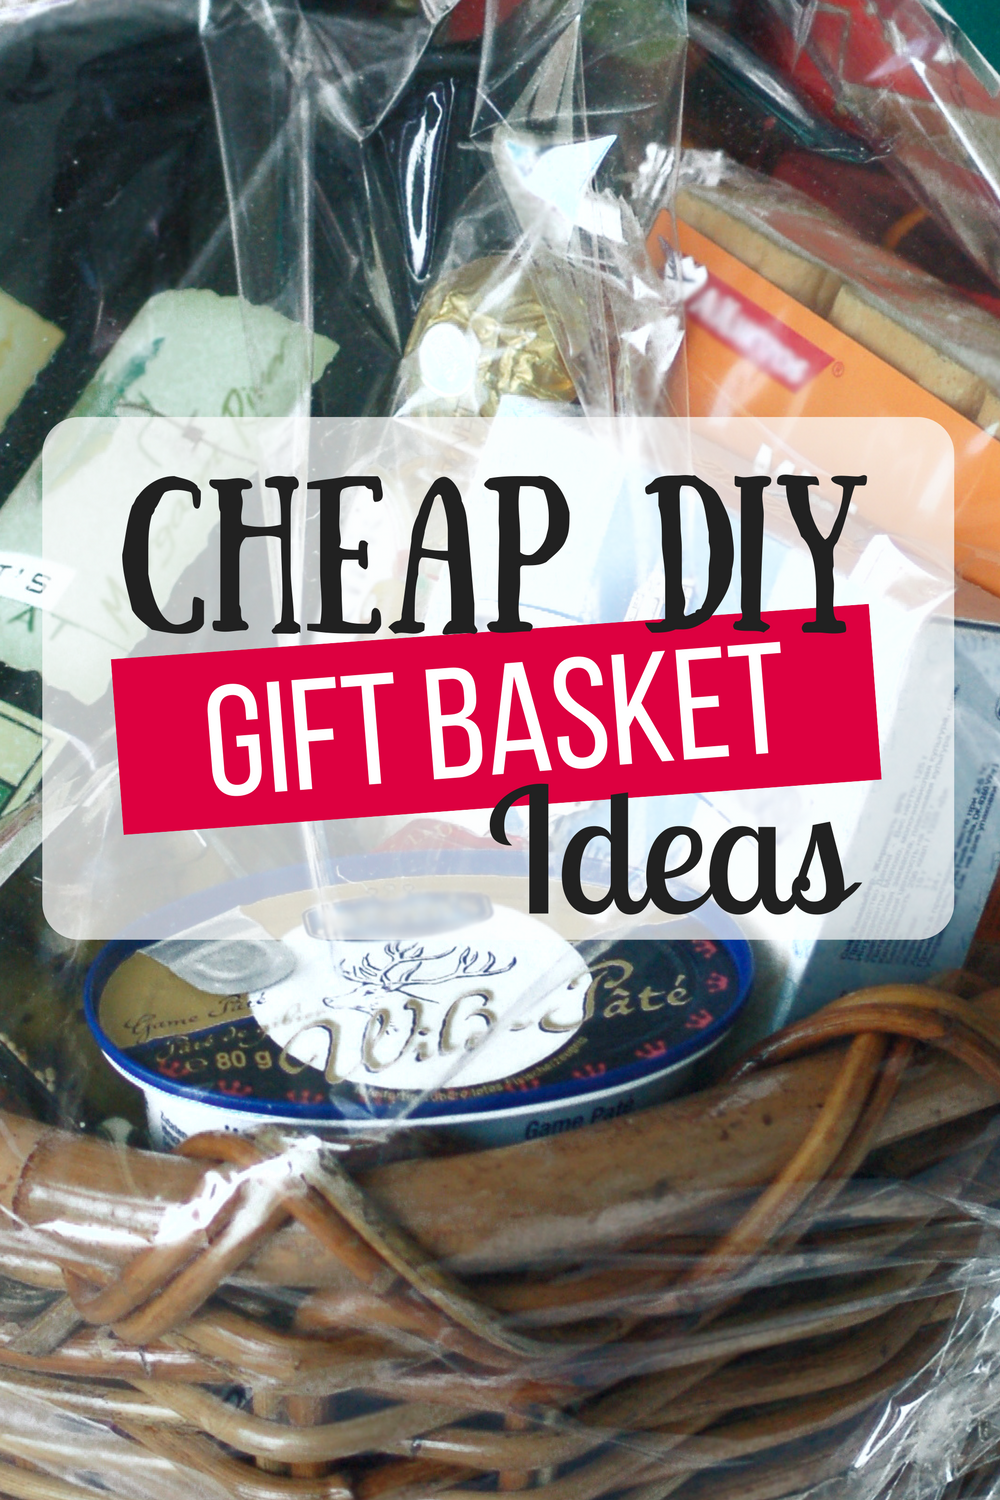 Cheap DIY Gift Baskets Ideas- Perfect timing! So many great ideas! I was able to whip up two baskets today just from stuff we had in our house! As in, I spent nothing for two great gifts! Cheap DIY Gift baskets indeed bwahaha. I've been on Pinterest for weeks trying to find unique Christmas gift ideas for our tight budget. We don't have a lot of money but still wanted to give good Christmas gifts. This was an answer to my prayers. ?